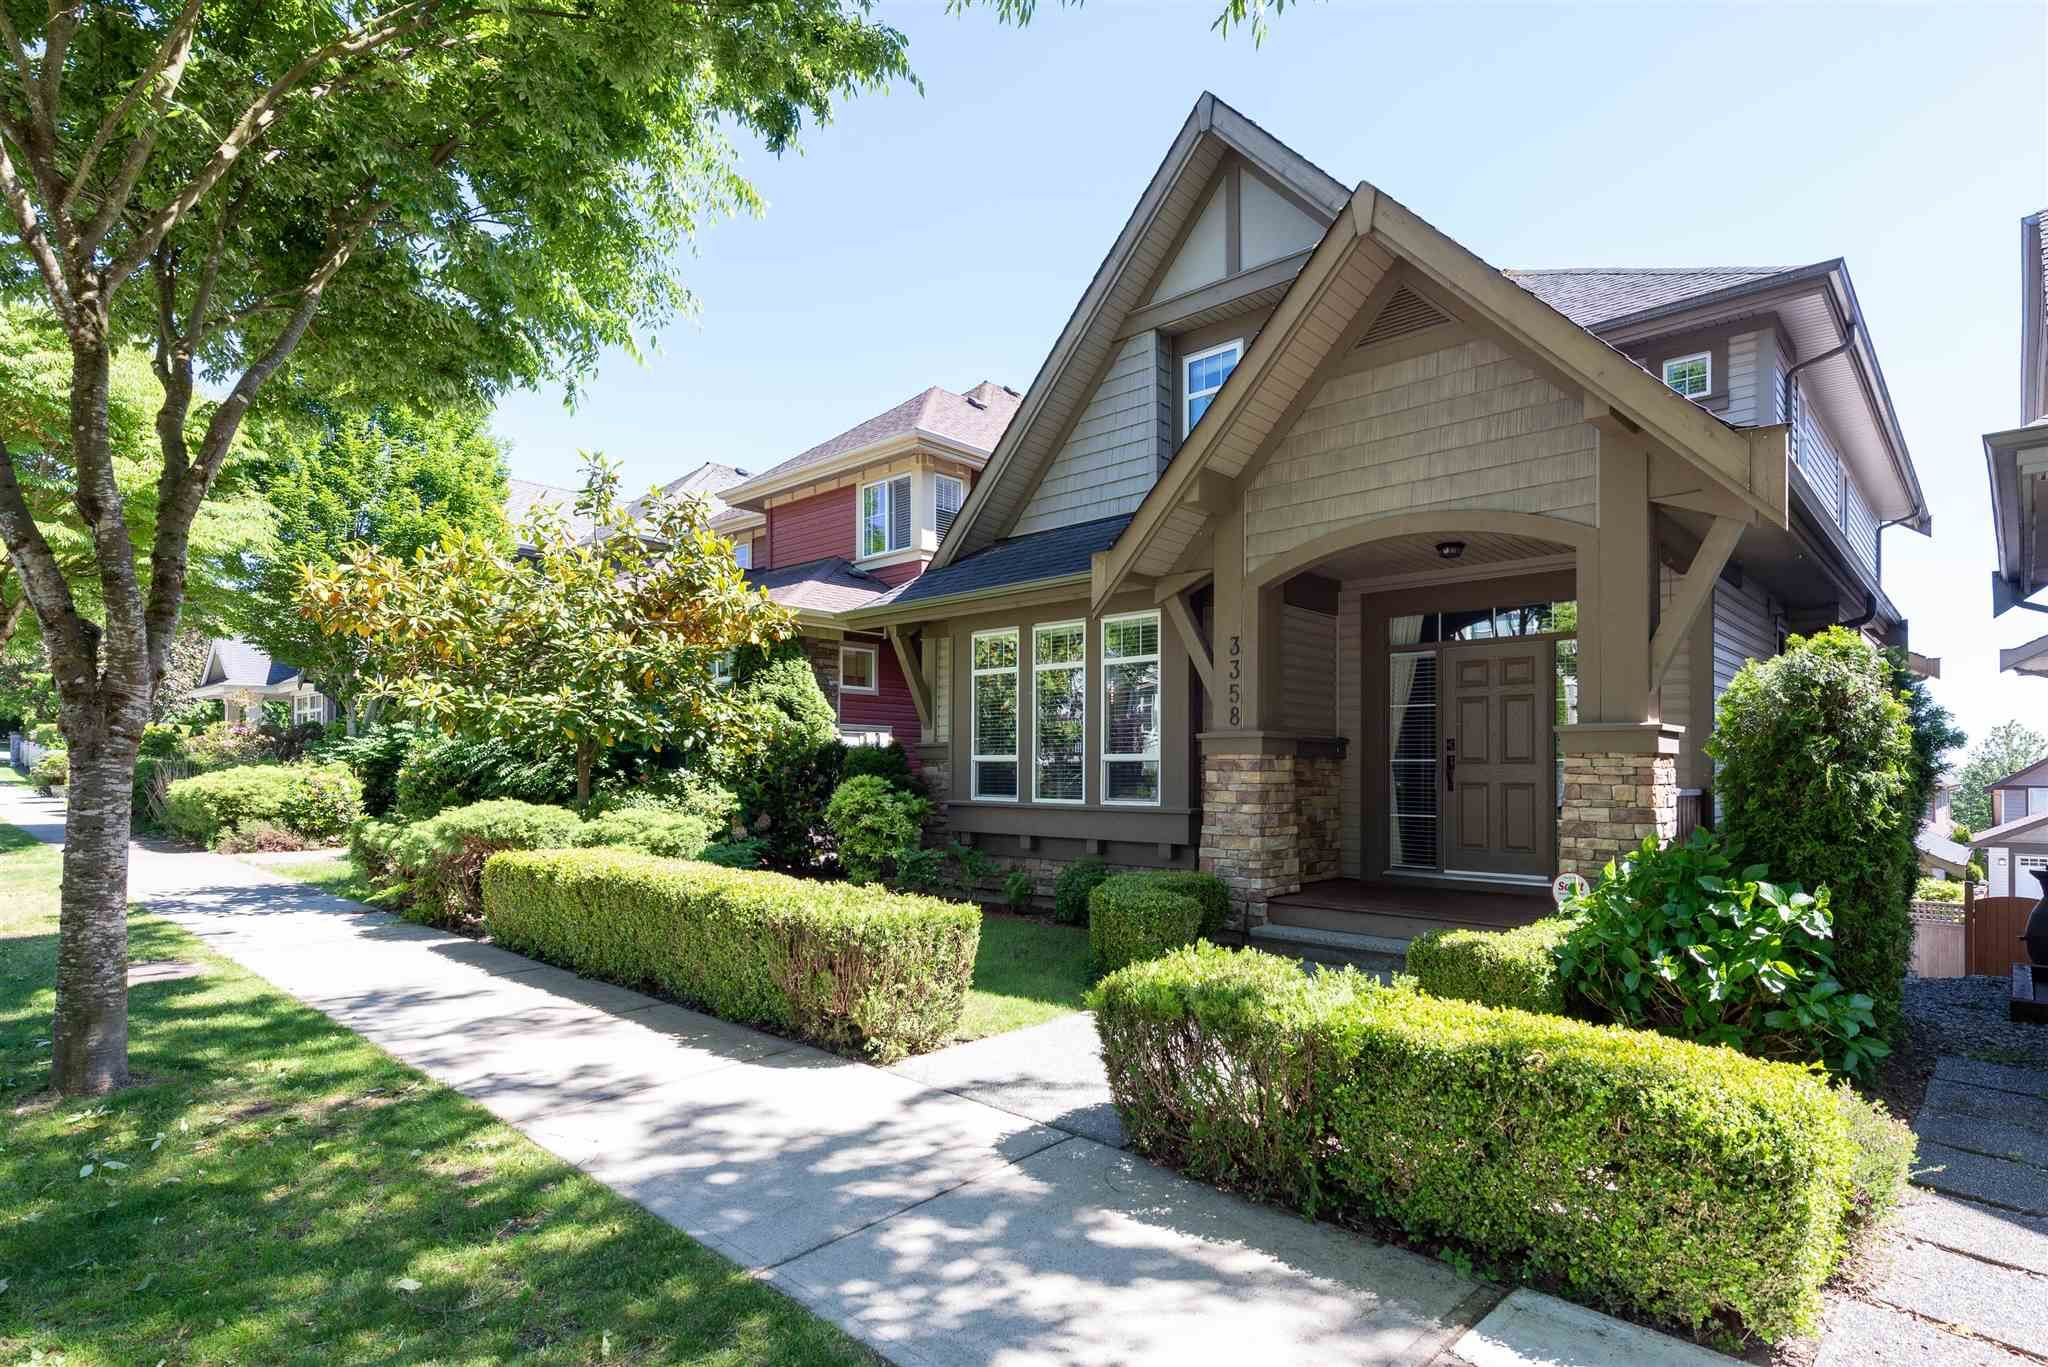 Main Photo: 3358 HIGHLAND Drive in Coquitlam: Burke Mountain House for sale : MLS®# R2599030